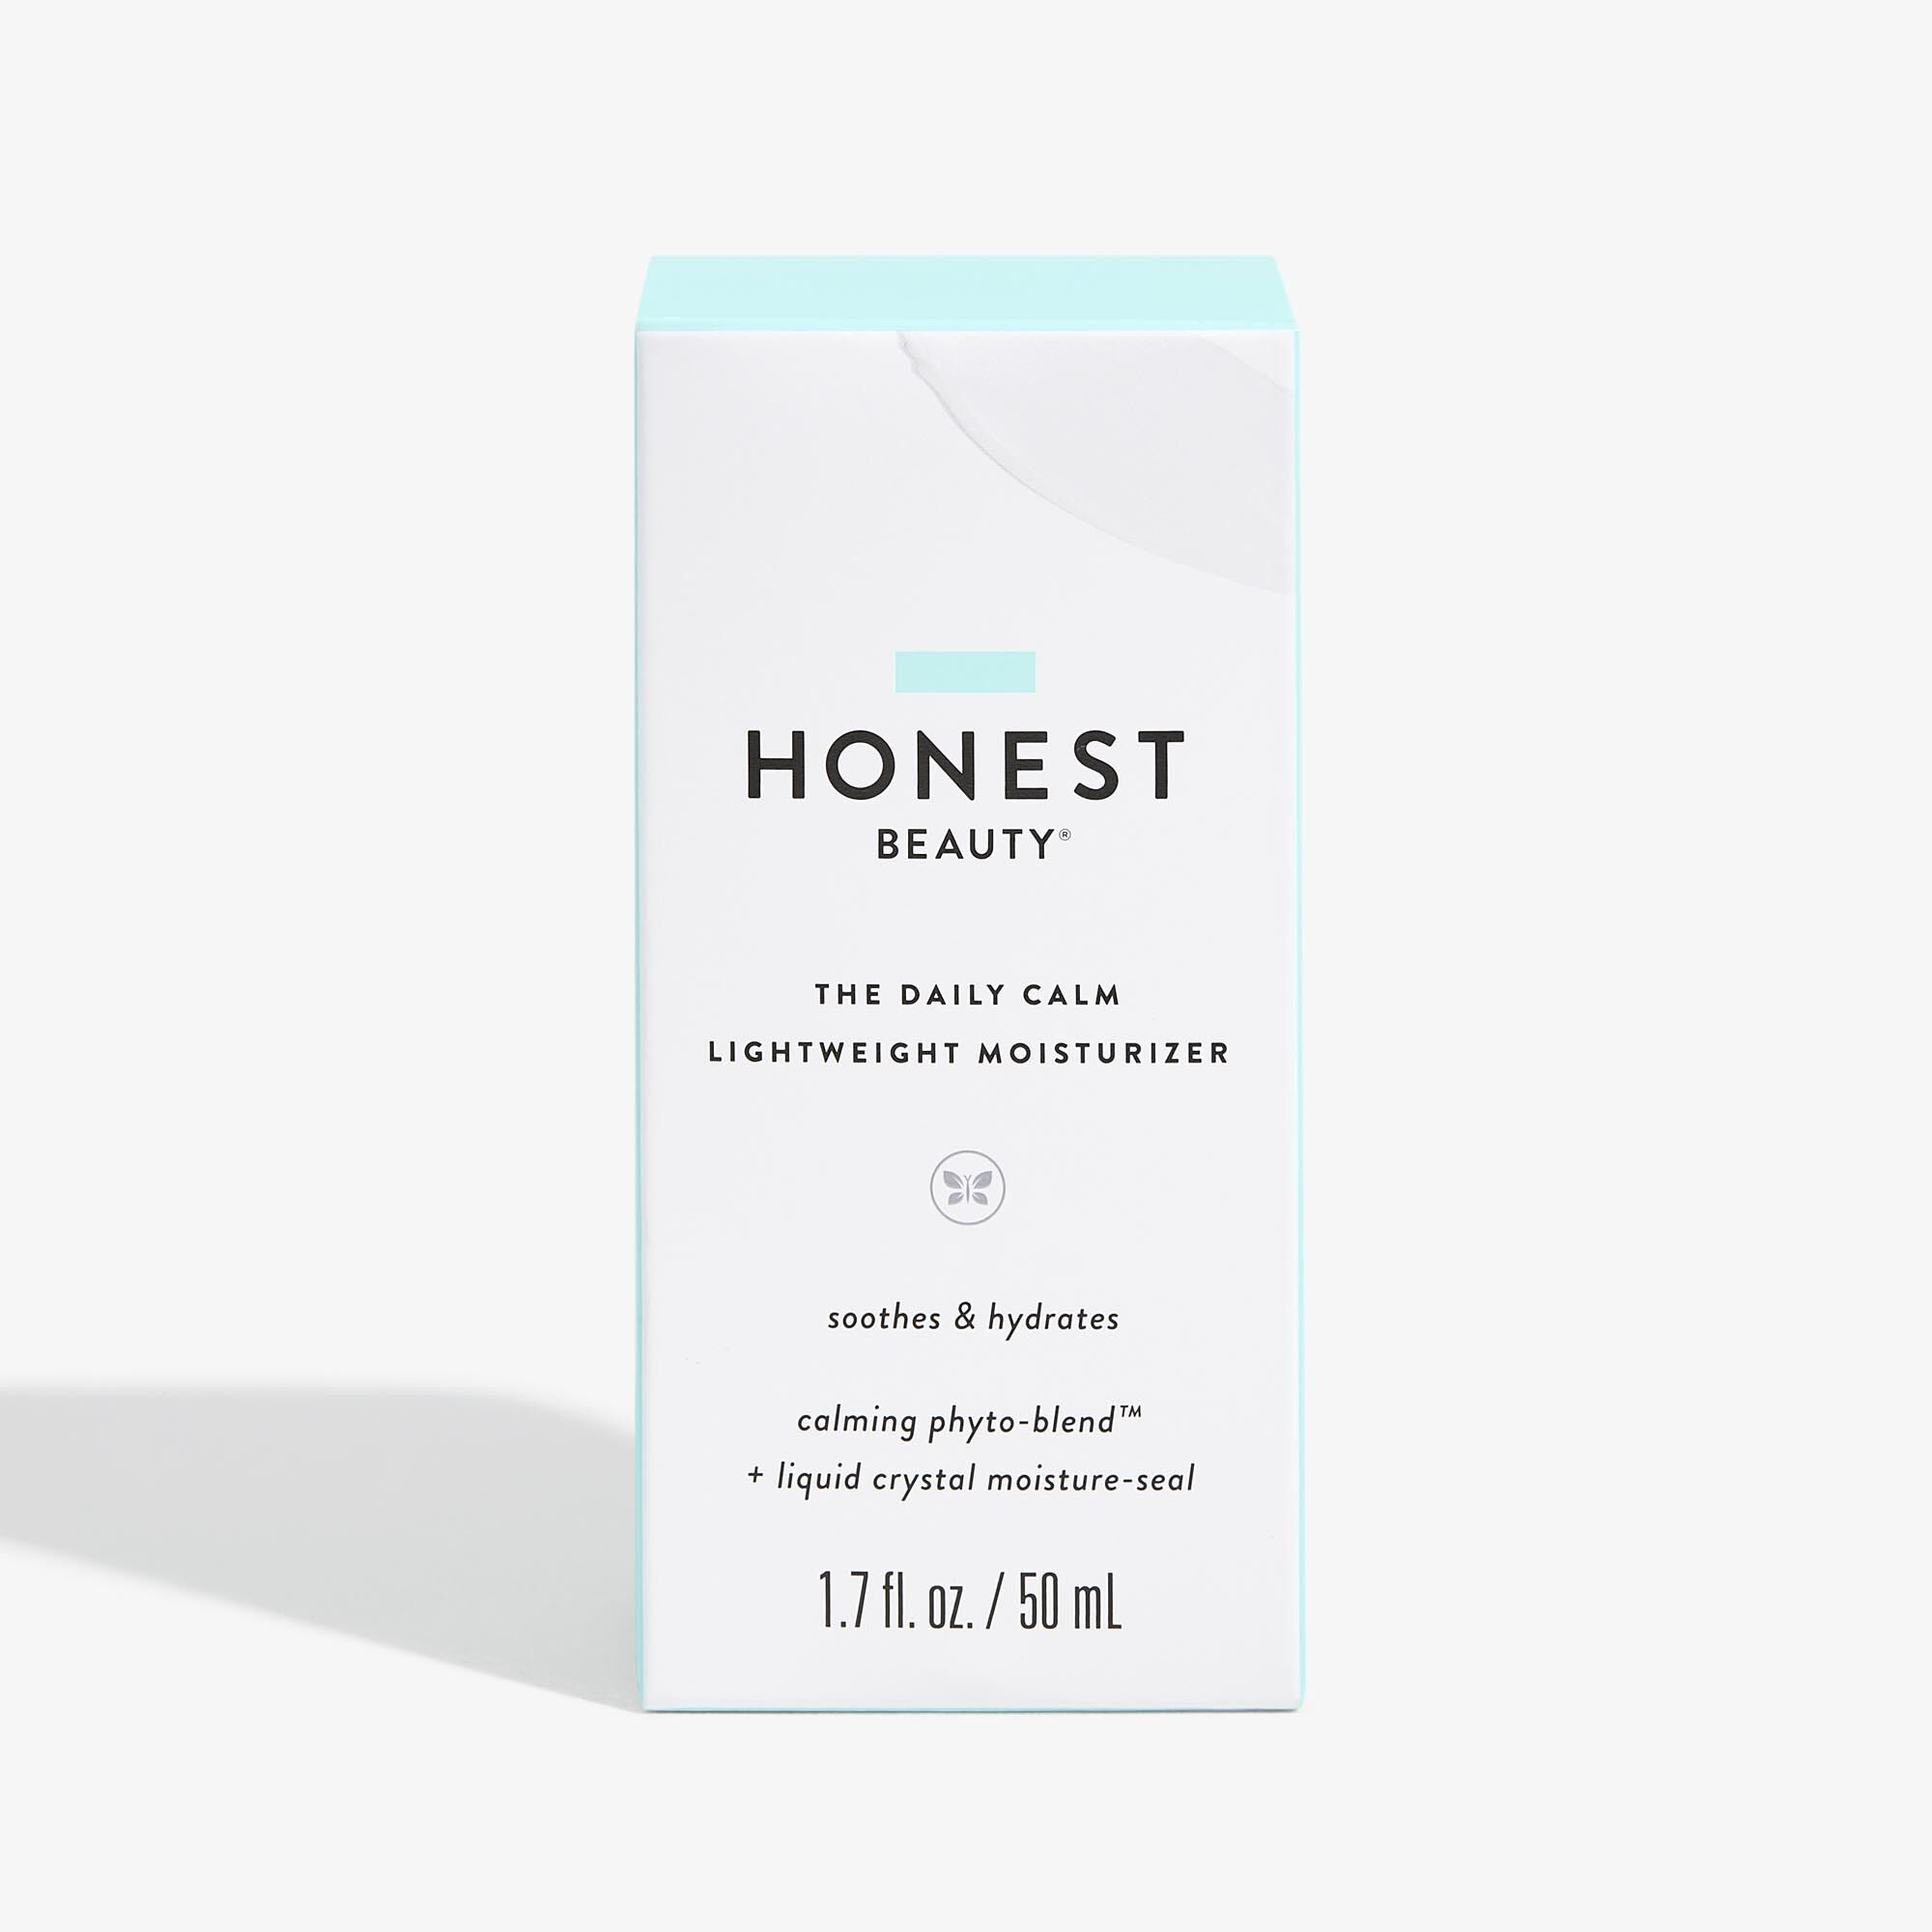 The Daily Calm Lightweight Moisturizer